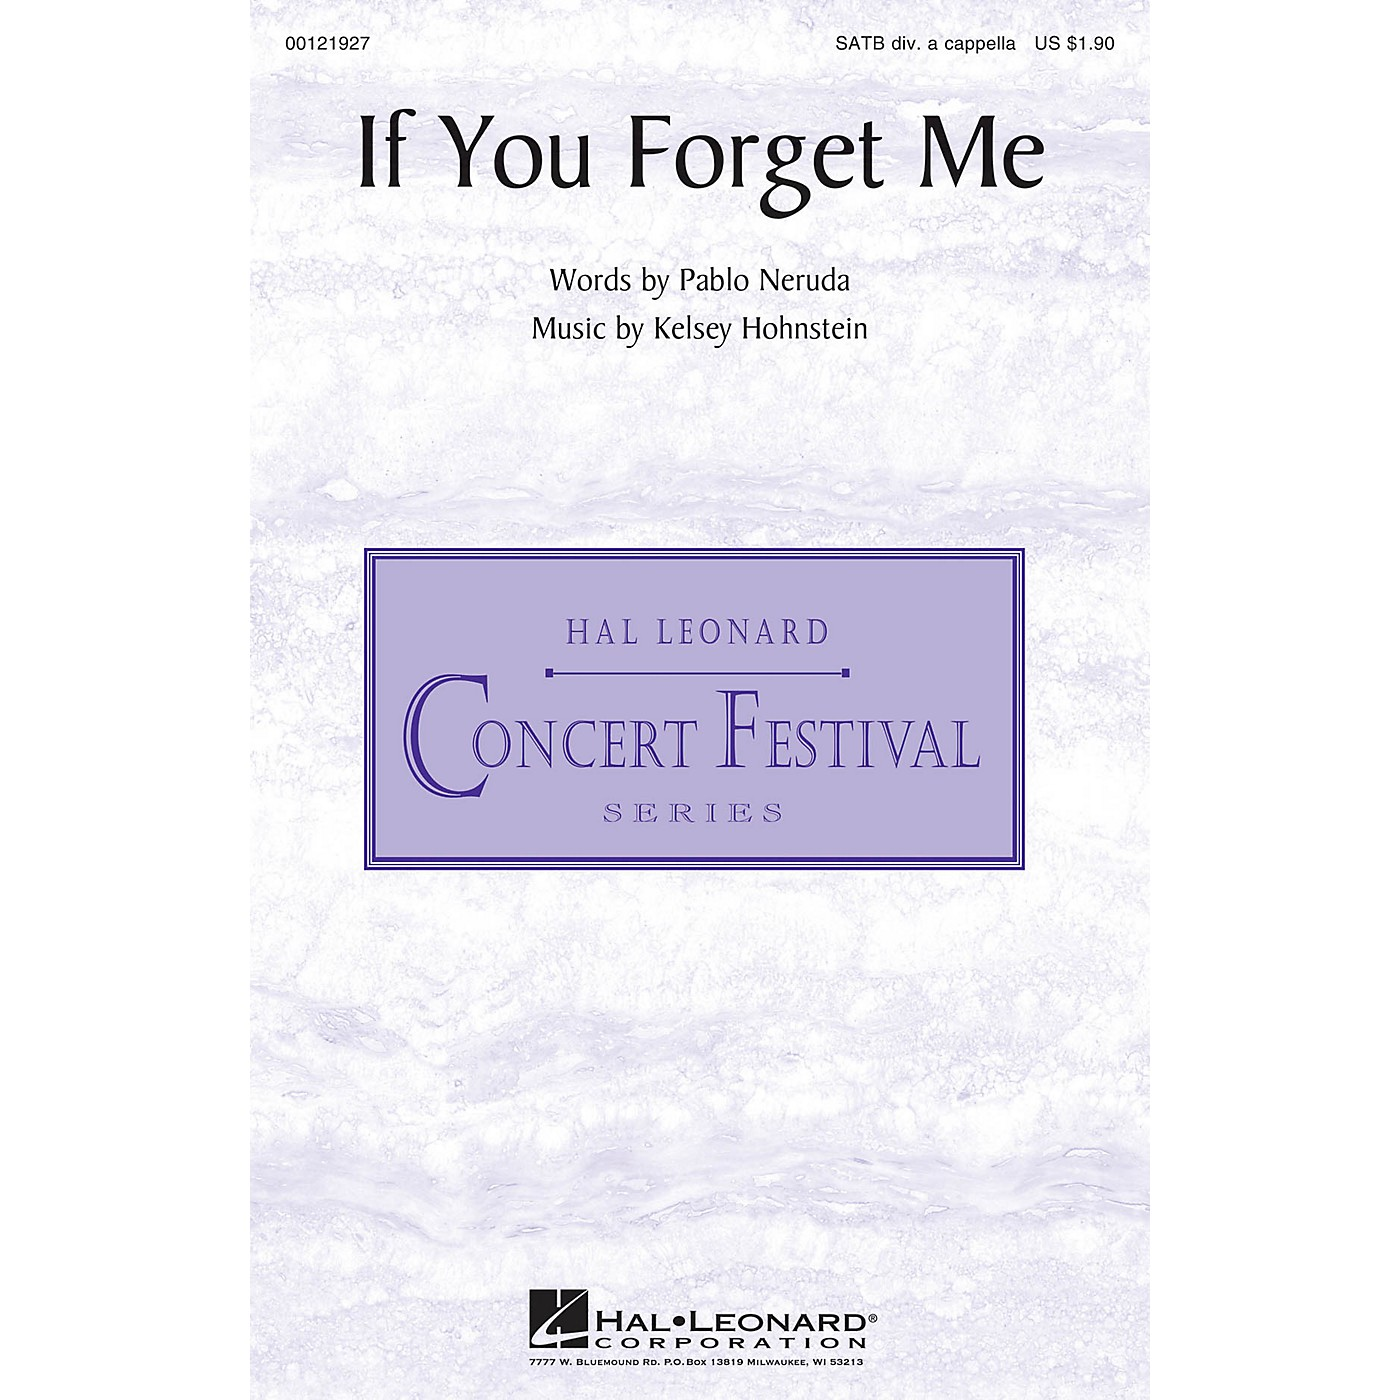 Hal Leonard If You Forget Me SATB DV A Cappella composed by Pablo Neruda thumbnail